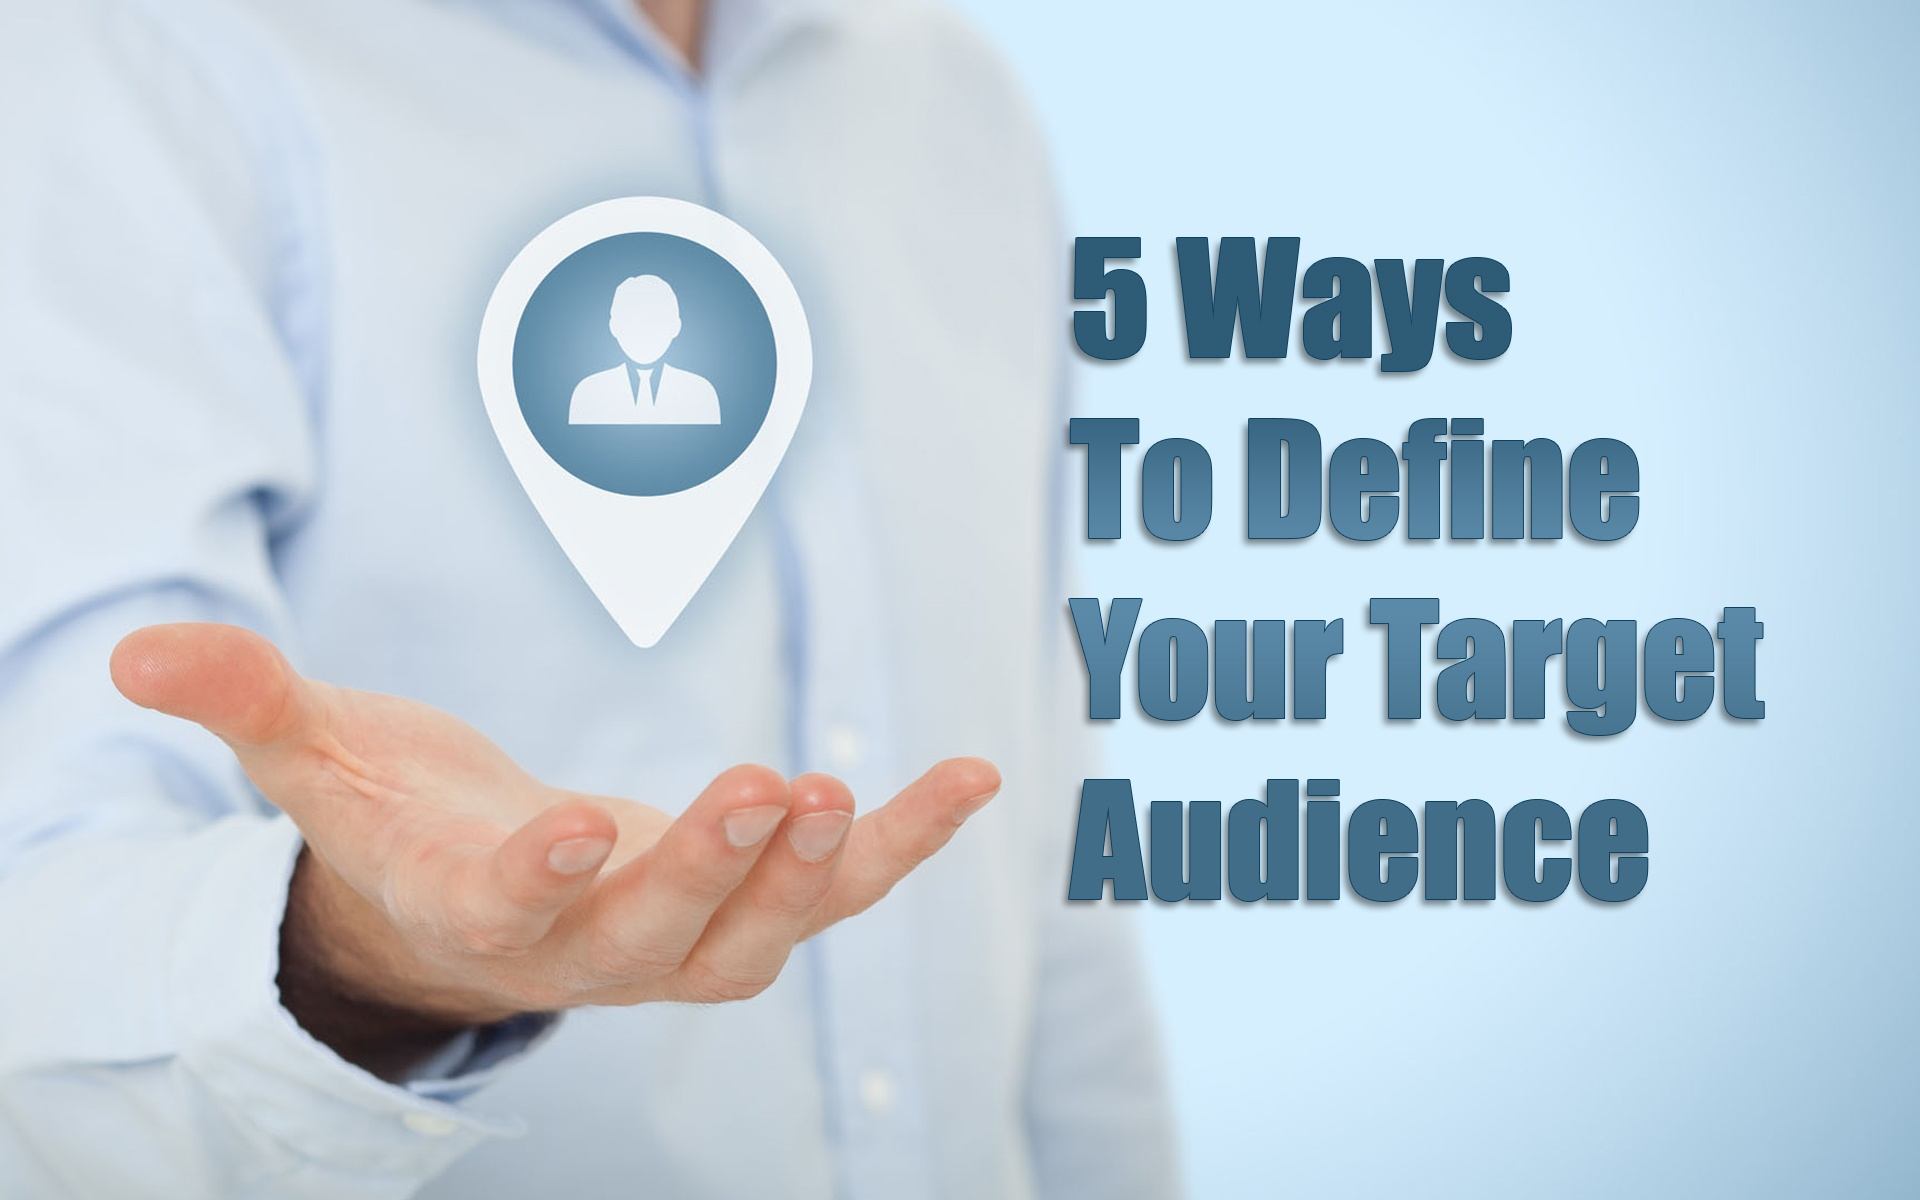 5 Ways To Define Your Target Audience